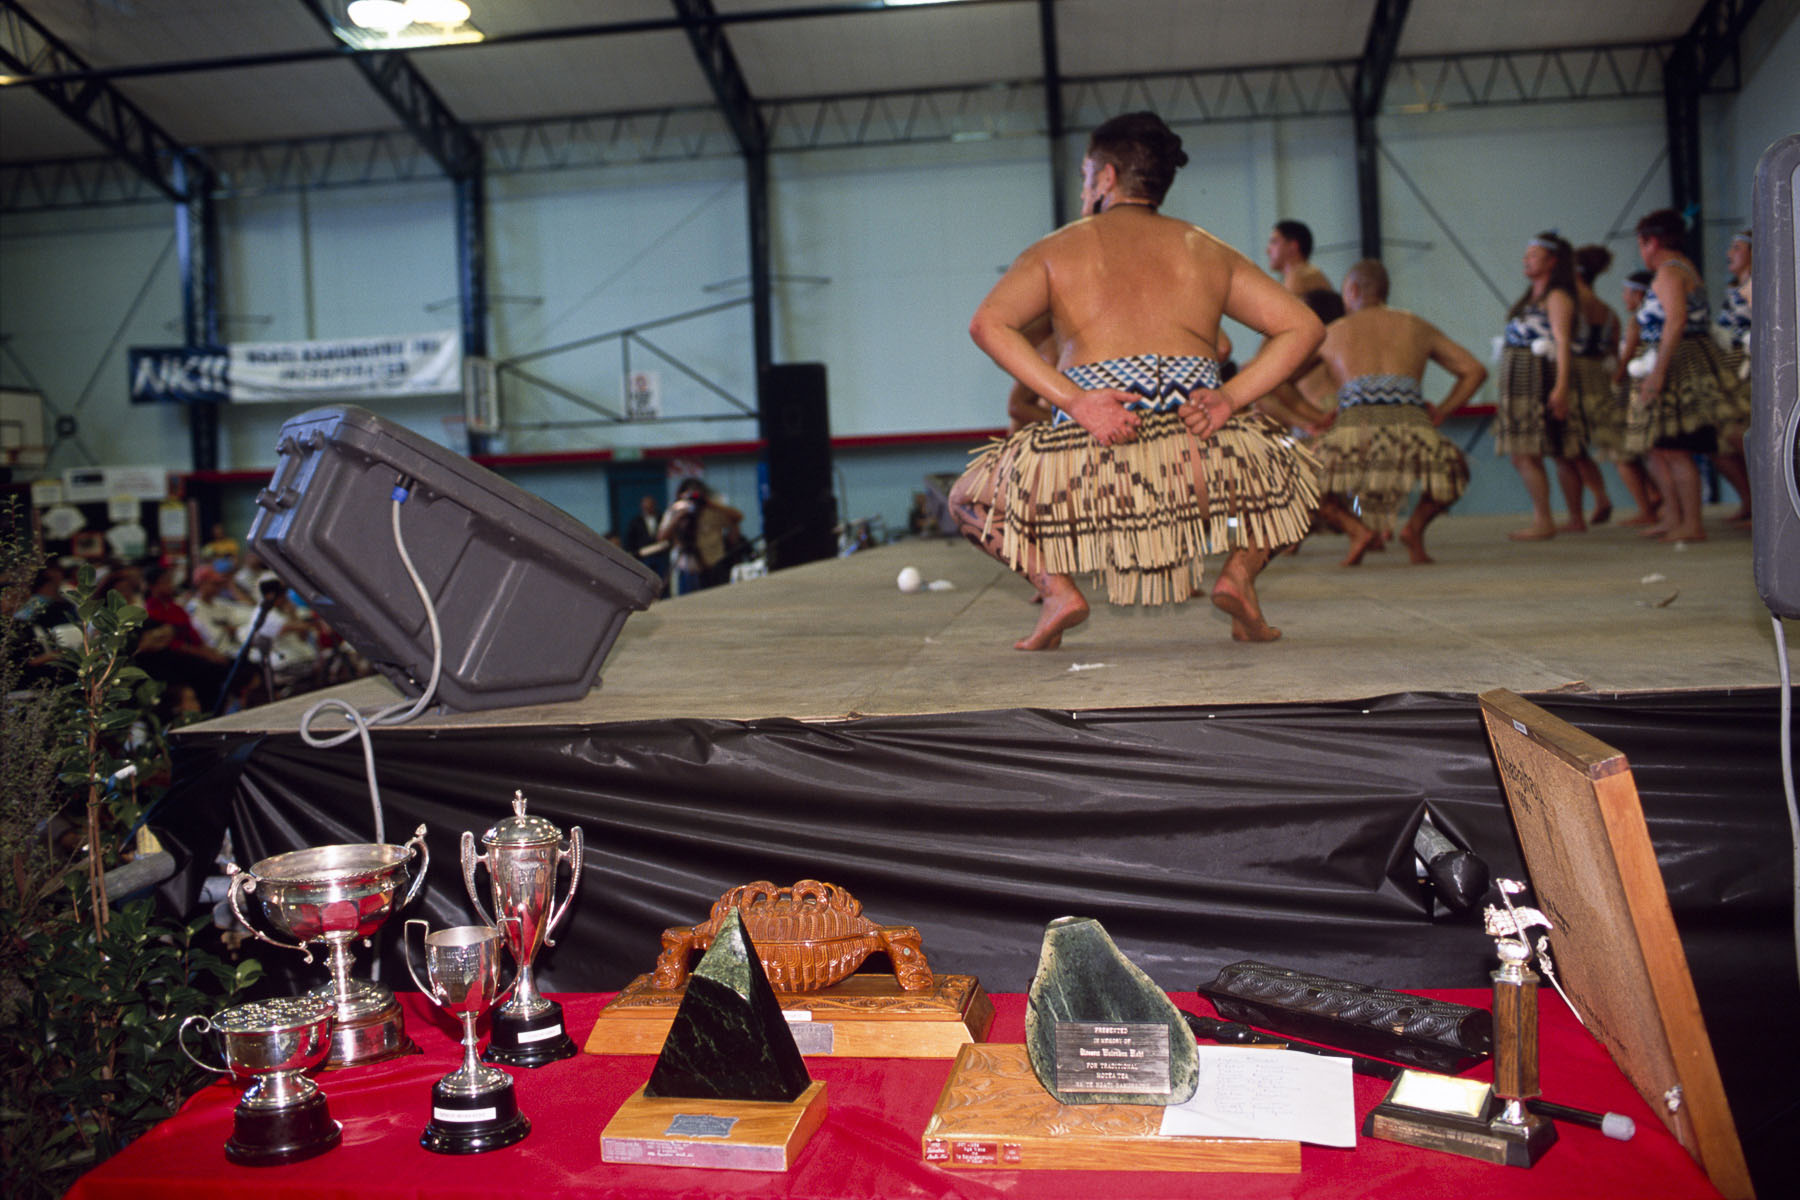 Haka performers attend the Kahungunu festival, a Maori culture folk arts festival in May 2000